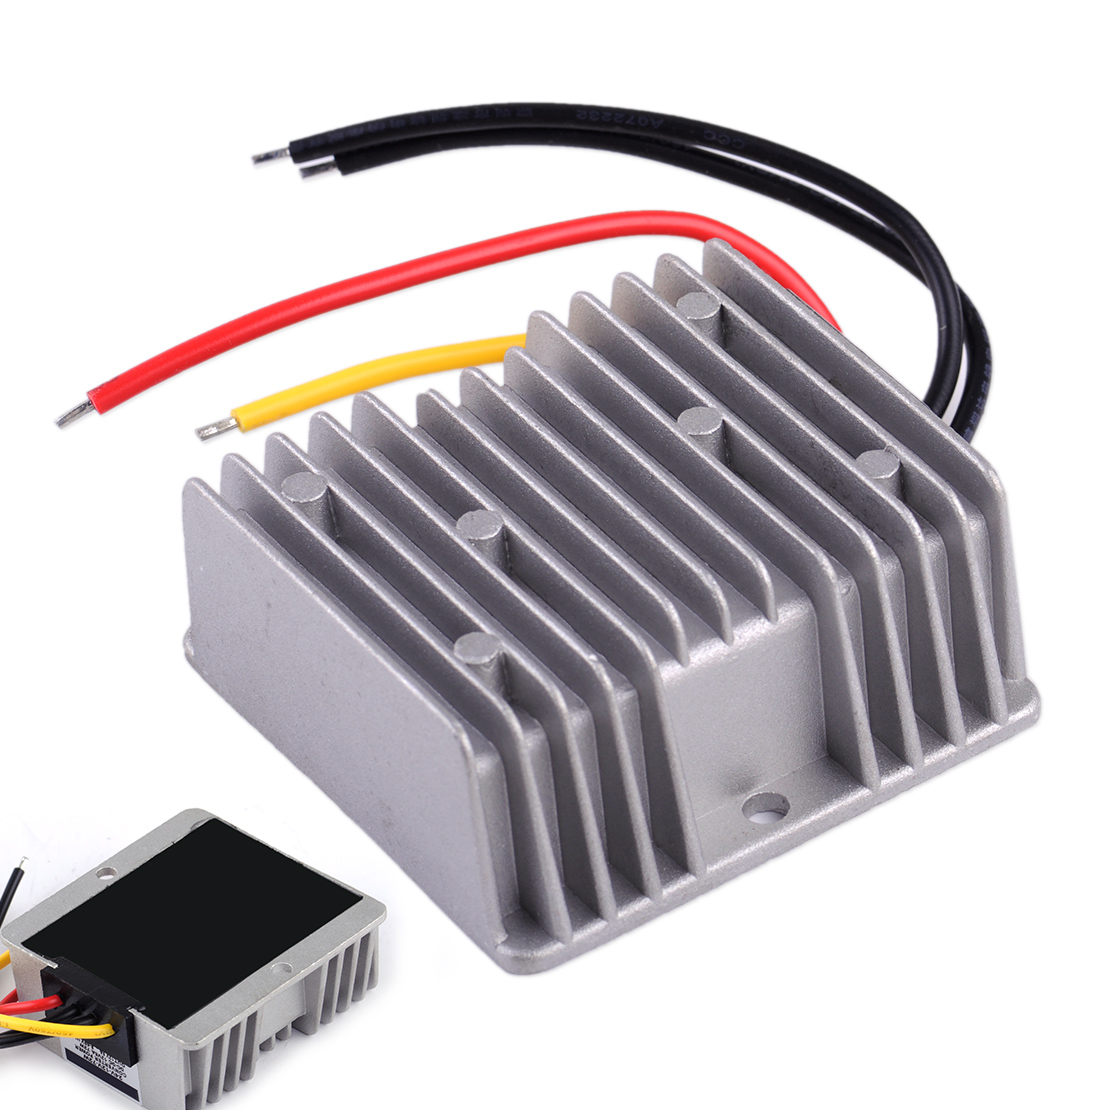 CITALL Dustproof Shockproof Waterproof Car Power Automatic DC Voltage Stabilizer Regulator 8-40V to 12V 6A 72W Supply Converter